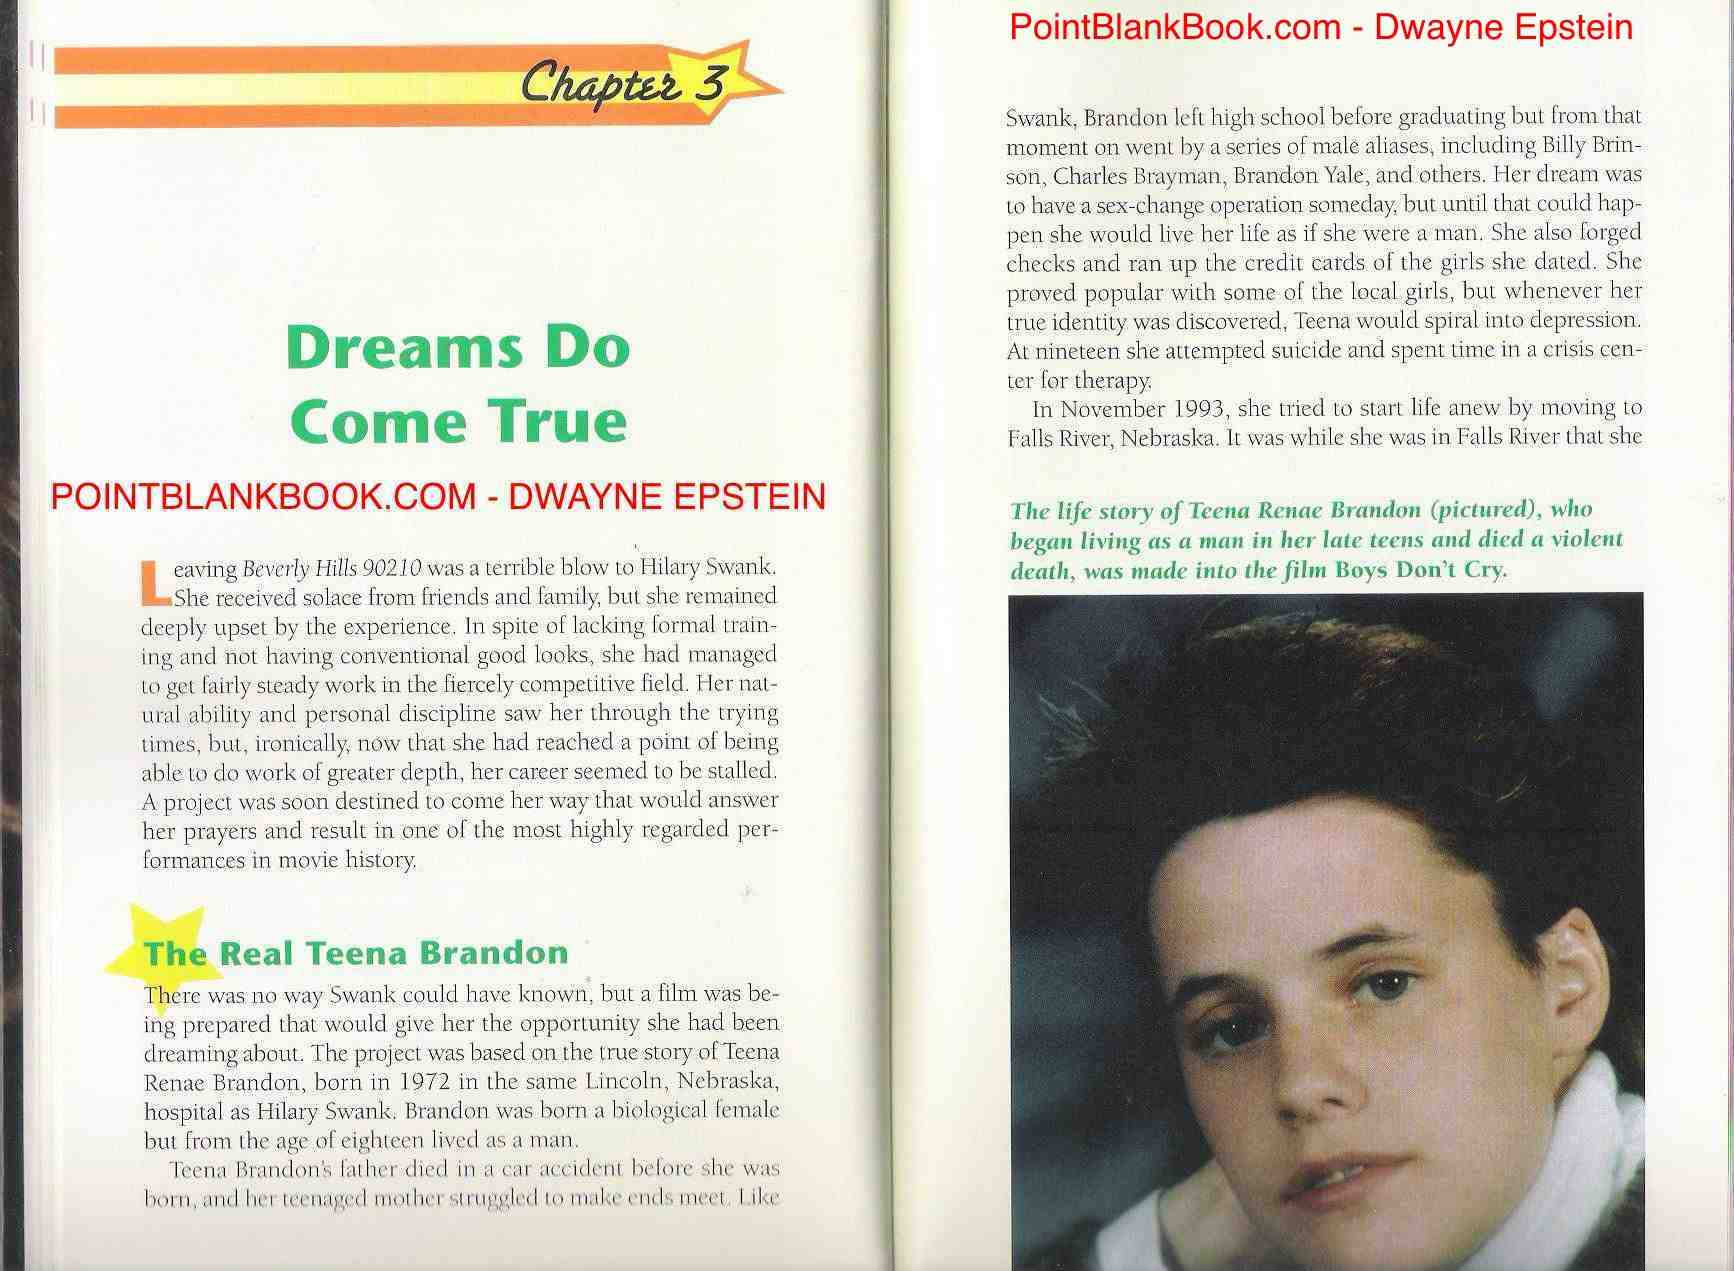 How I dealt with transgender issues for young adult readers, from the beginning.